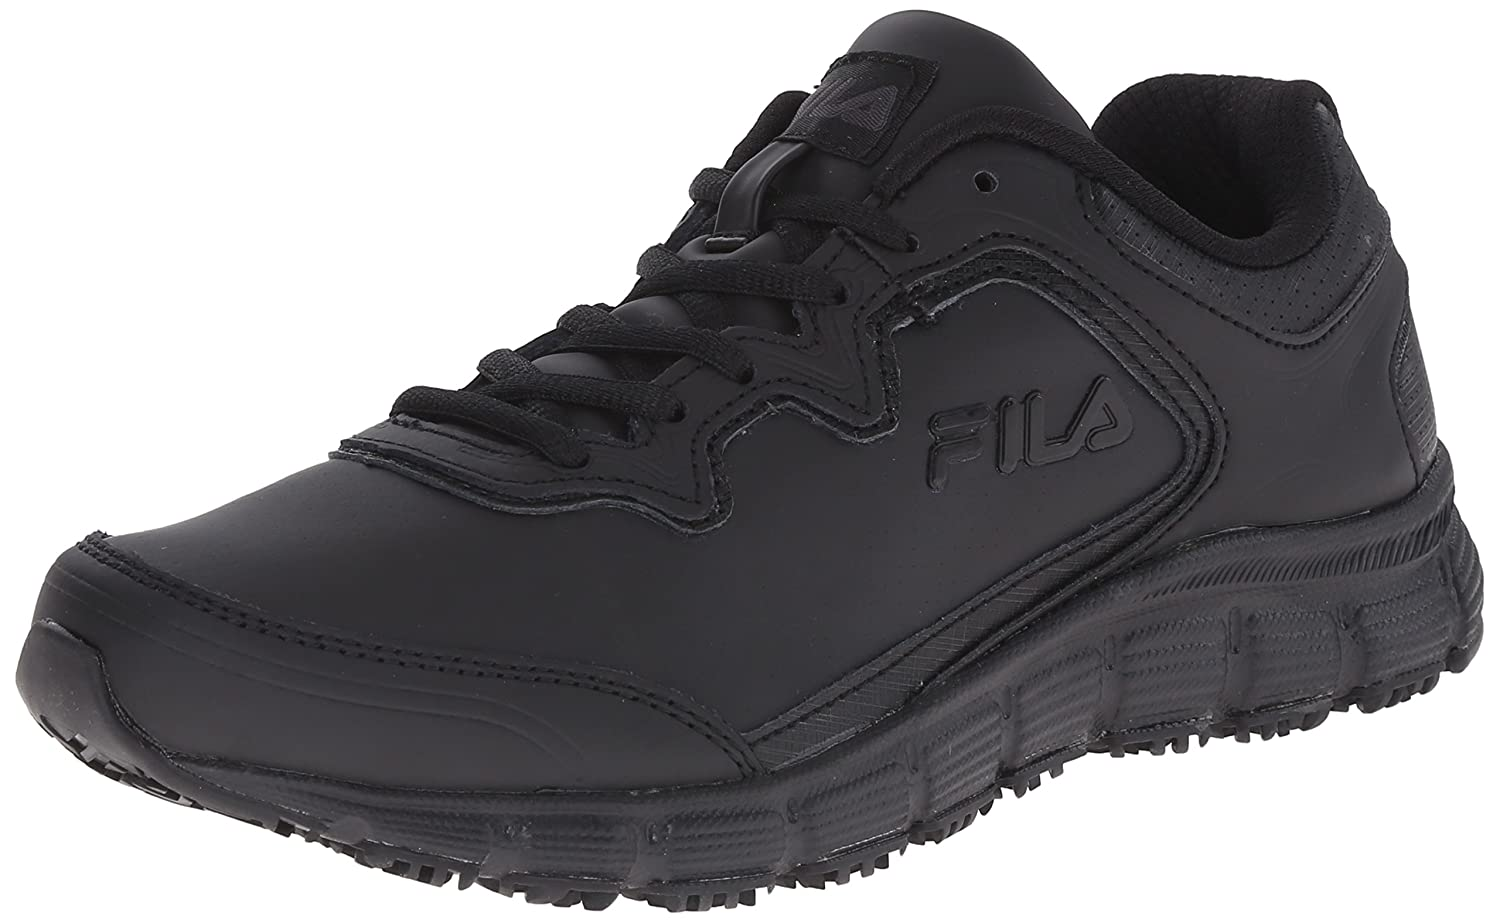 Fila Women's Memory Fresh Start Slip Resistant Work Shoe B0107M1J8W 7 B(M) US|Black/Black/Black